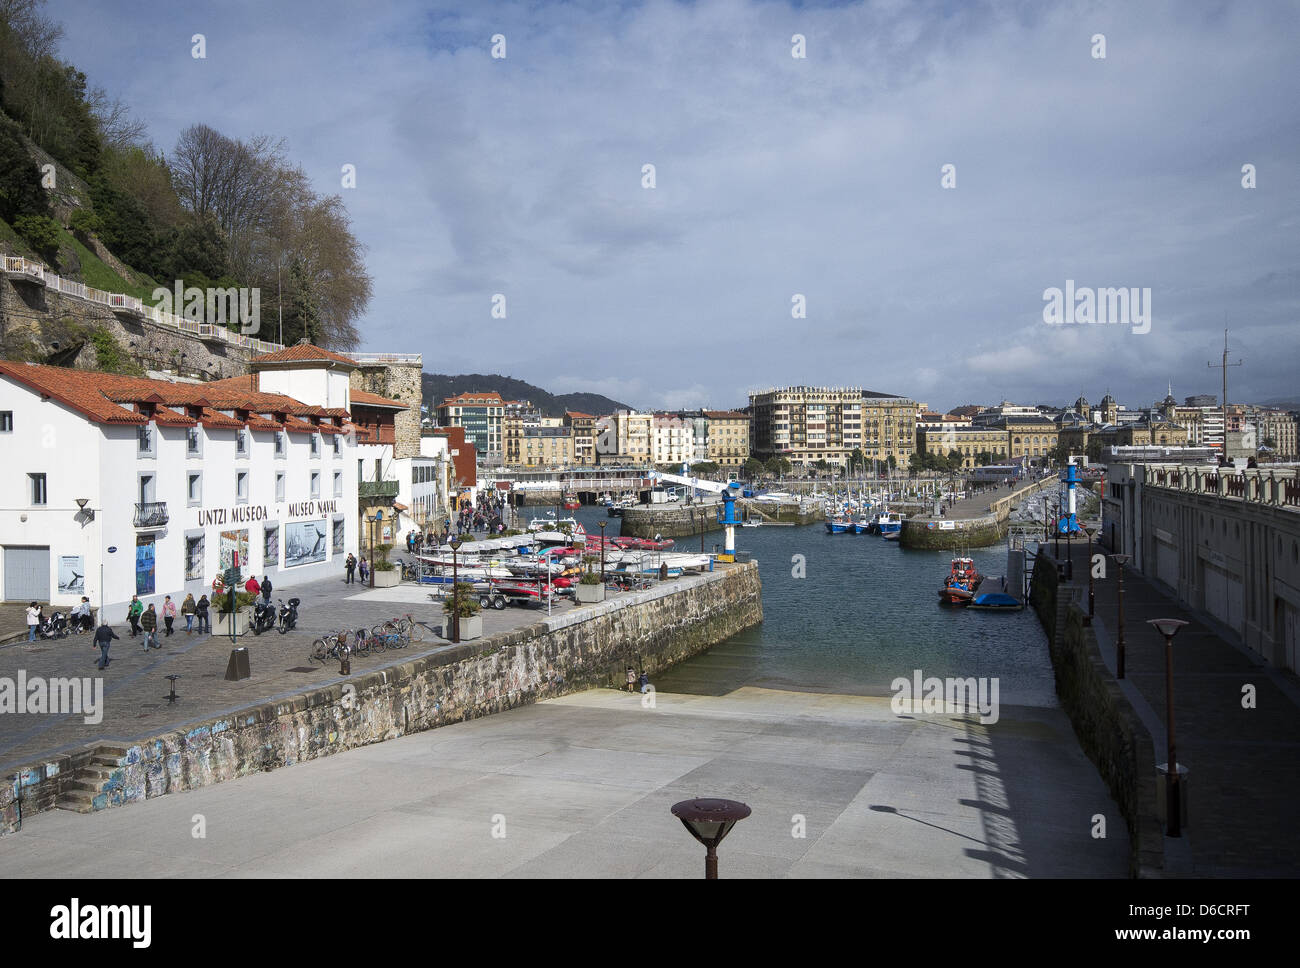 The harbour and Naval Museum in San Sebastián, Donostia, Basque Country, Spain - Stock Image